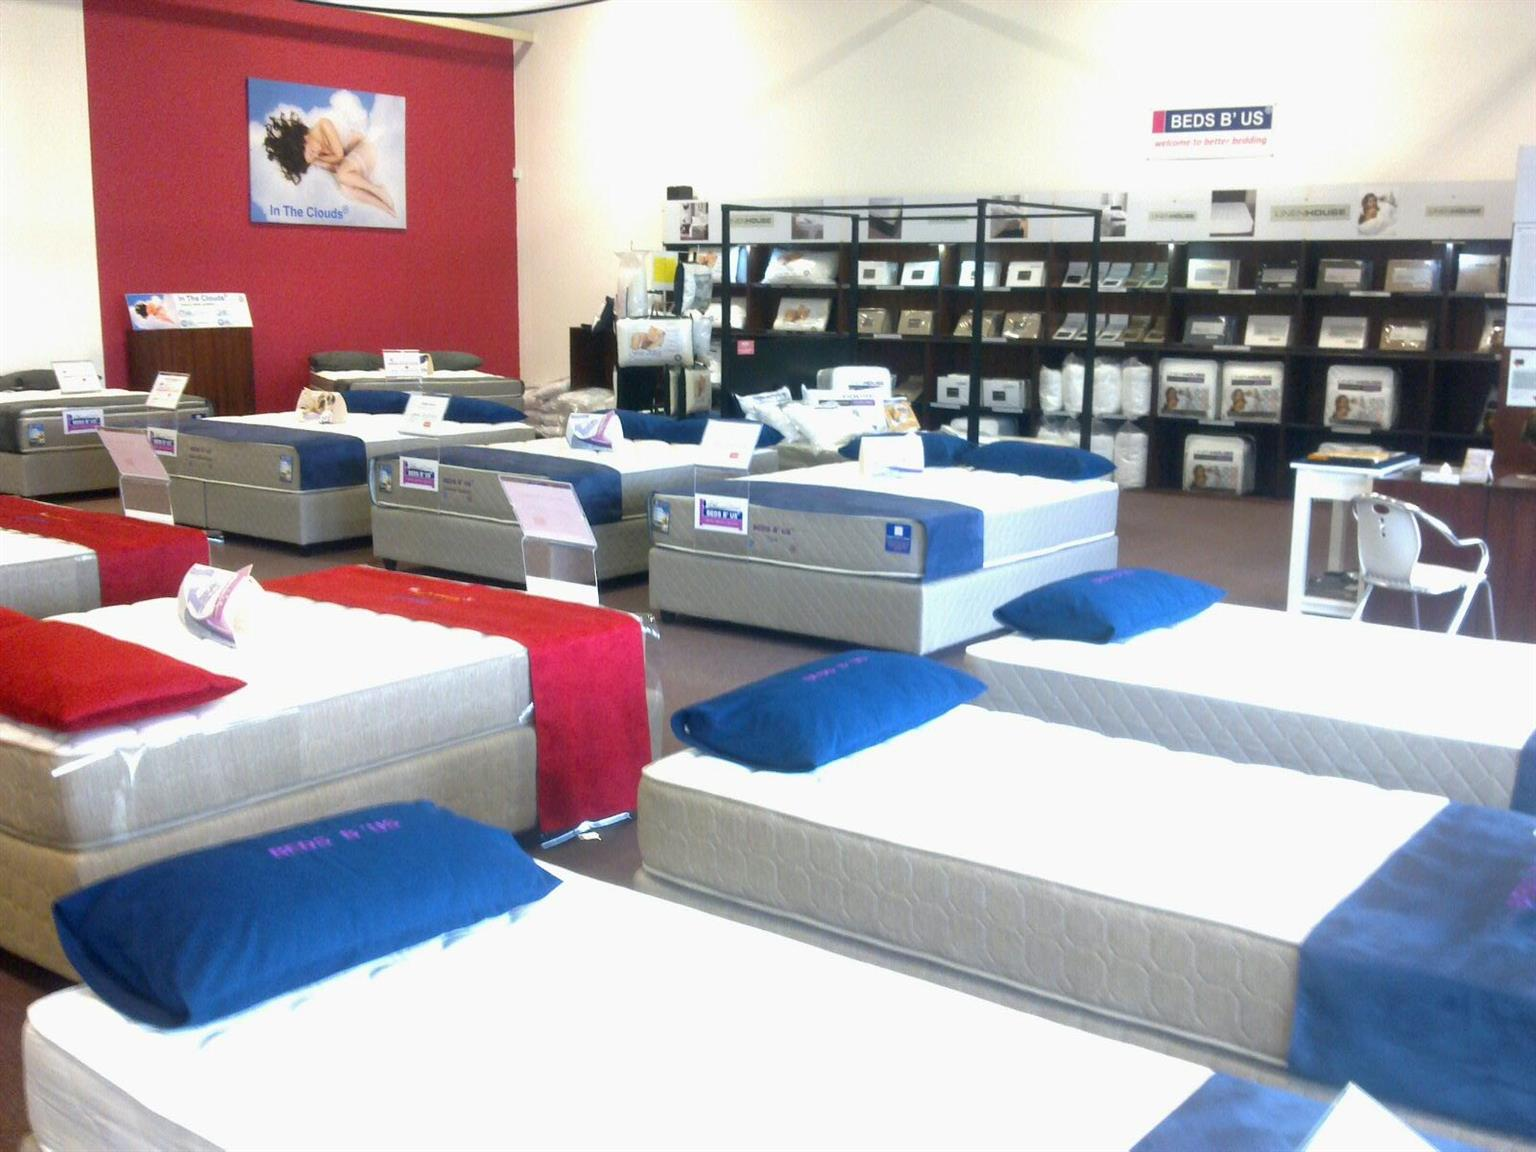 BEDS B' US your local specialist BED & MATTRESS SHOP